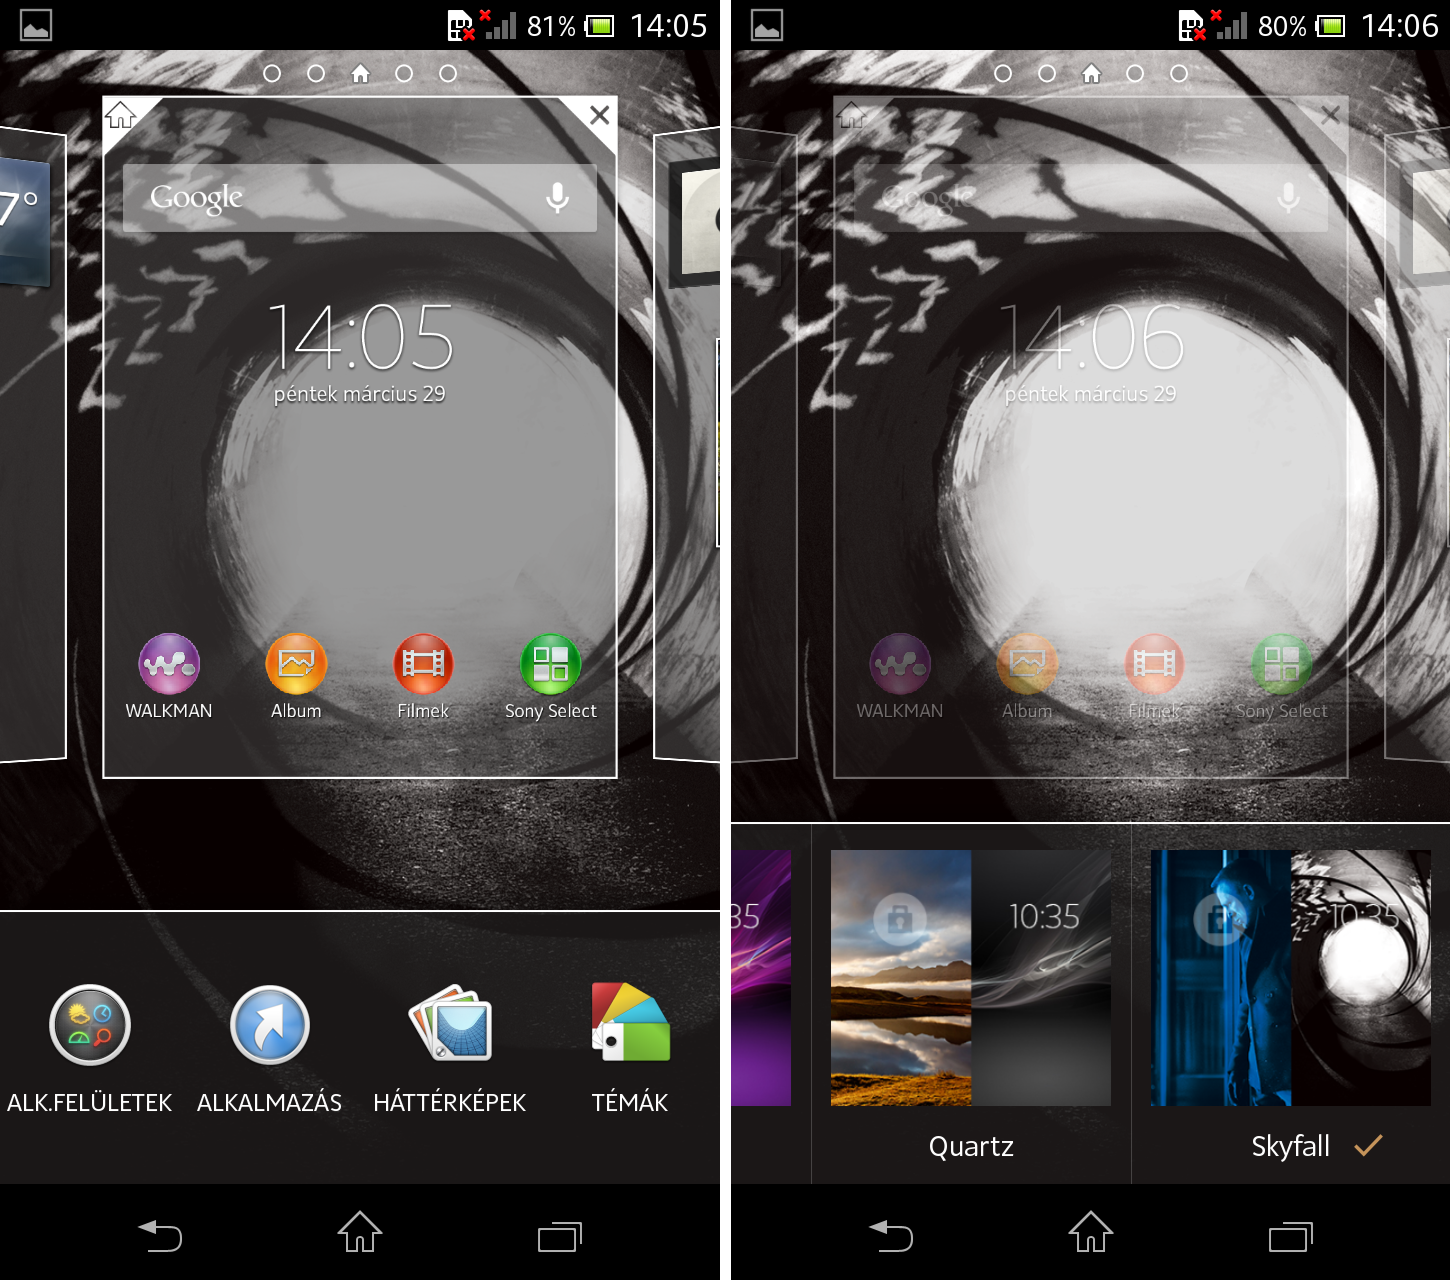 Xperia T homescreen-themes